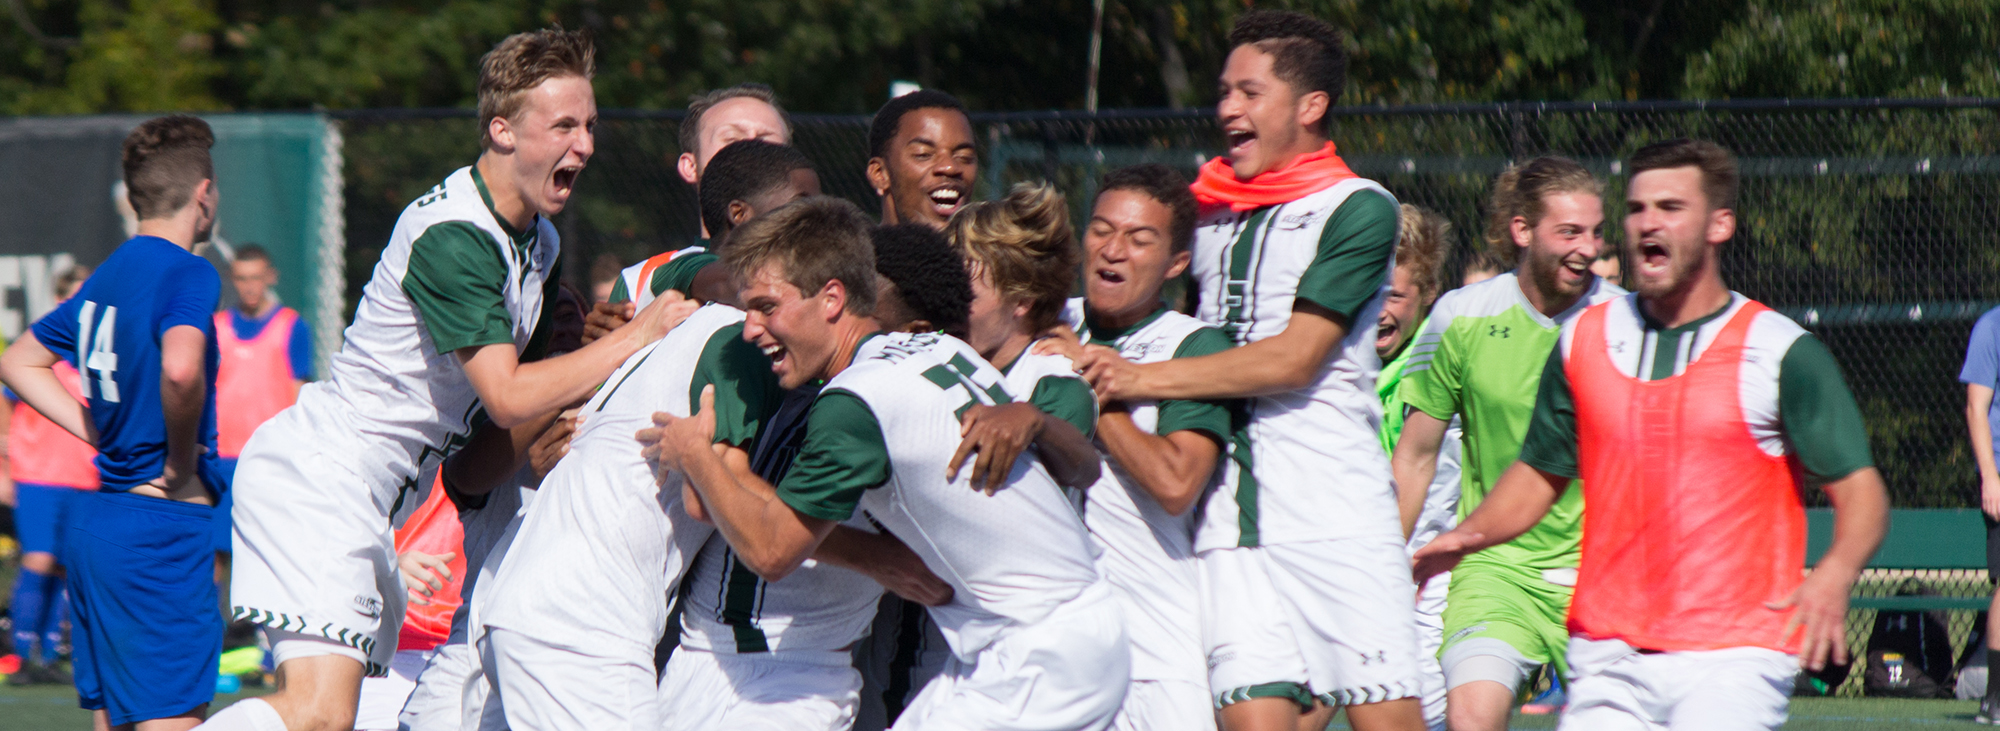 Men's Soccer to Host ID Clinic on September 16